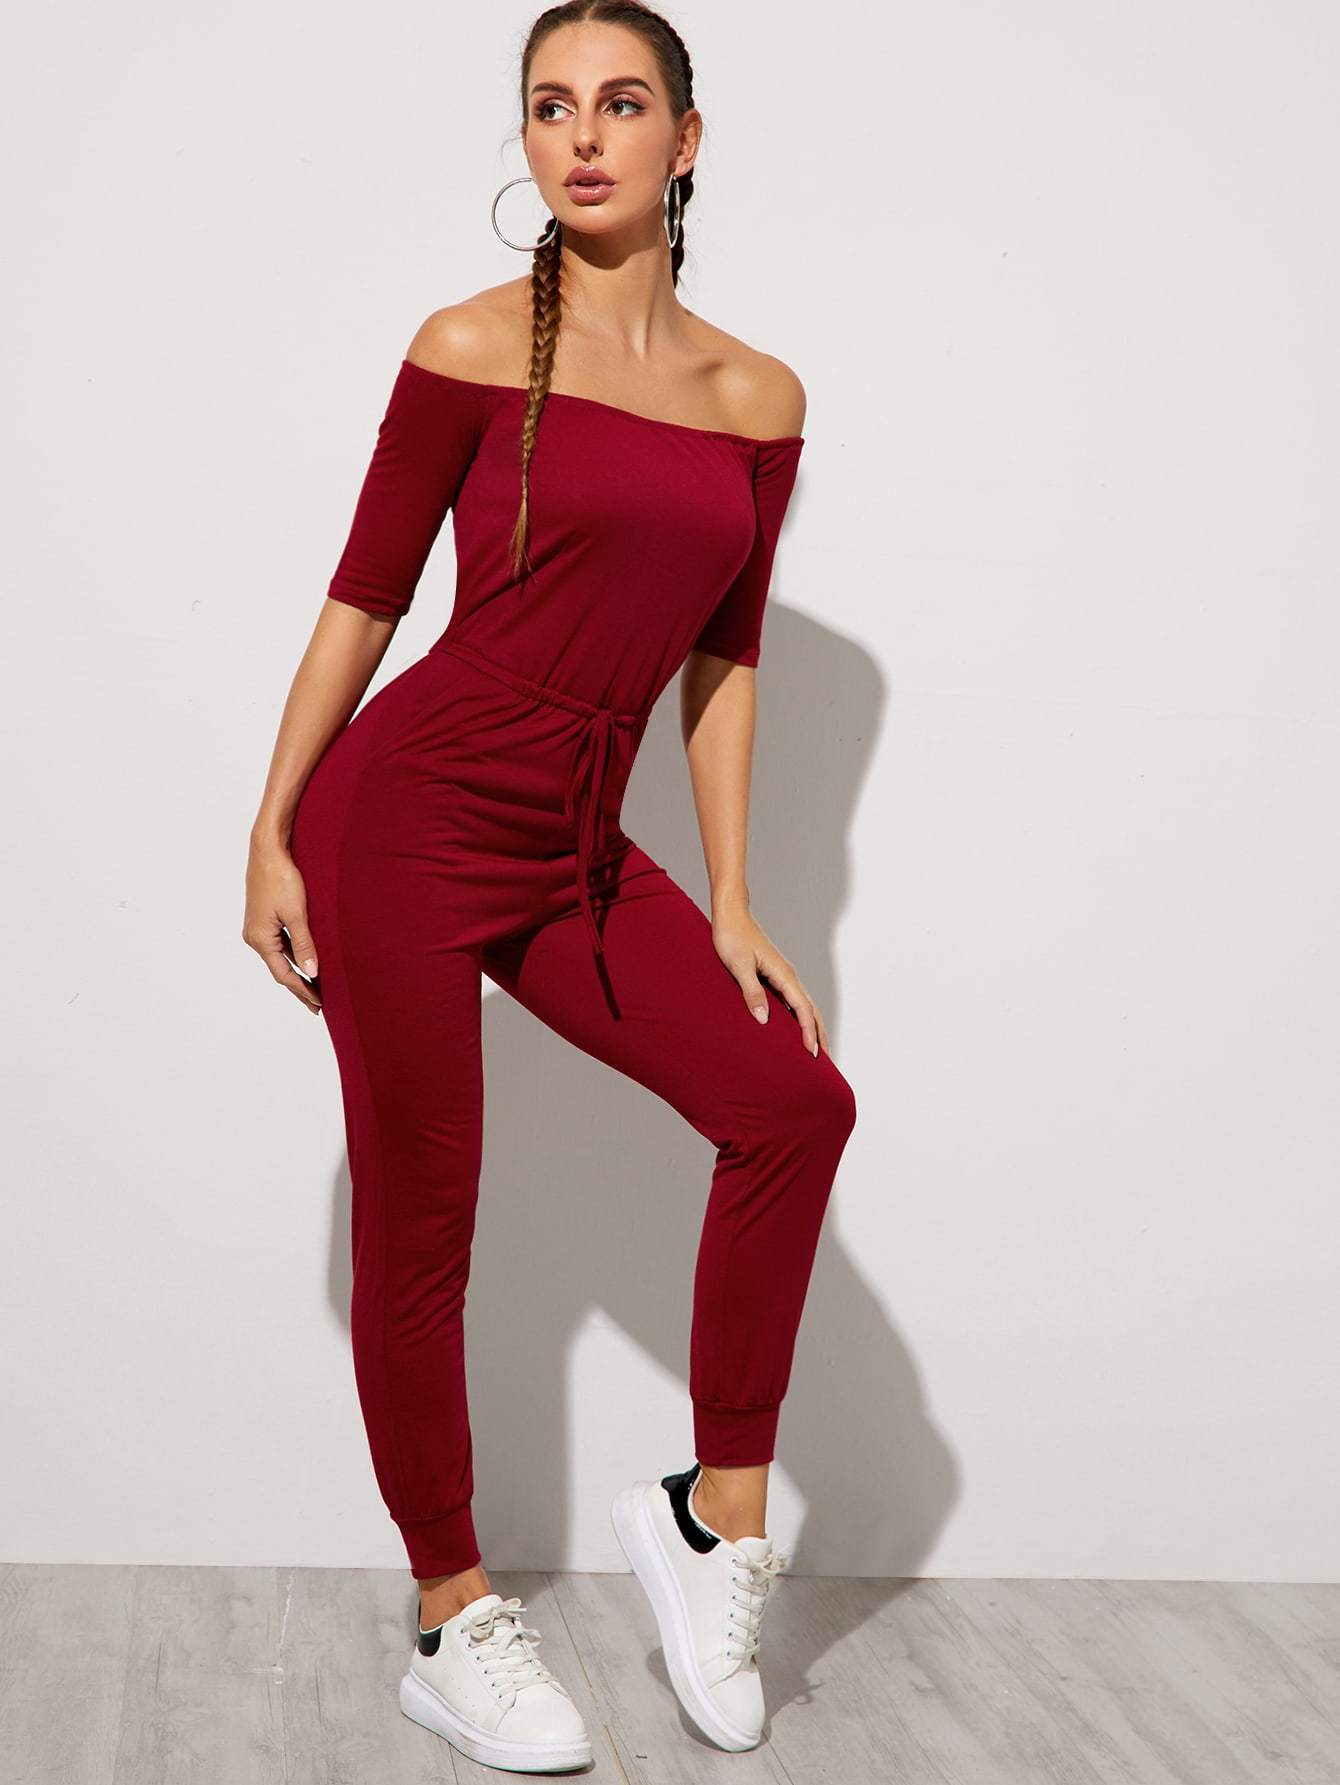 Solid Drawstring Waist Bardot Jumpsuit - FLJ CORPORATIONS